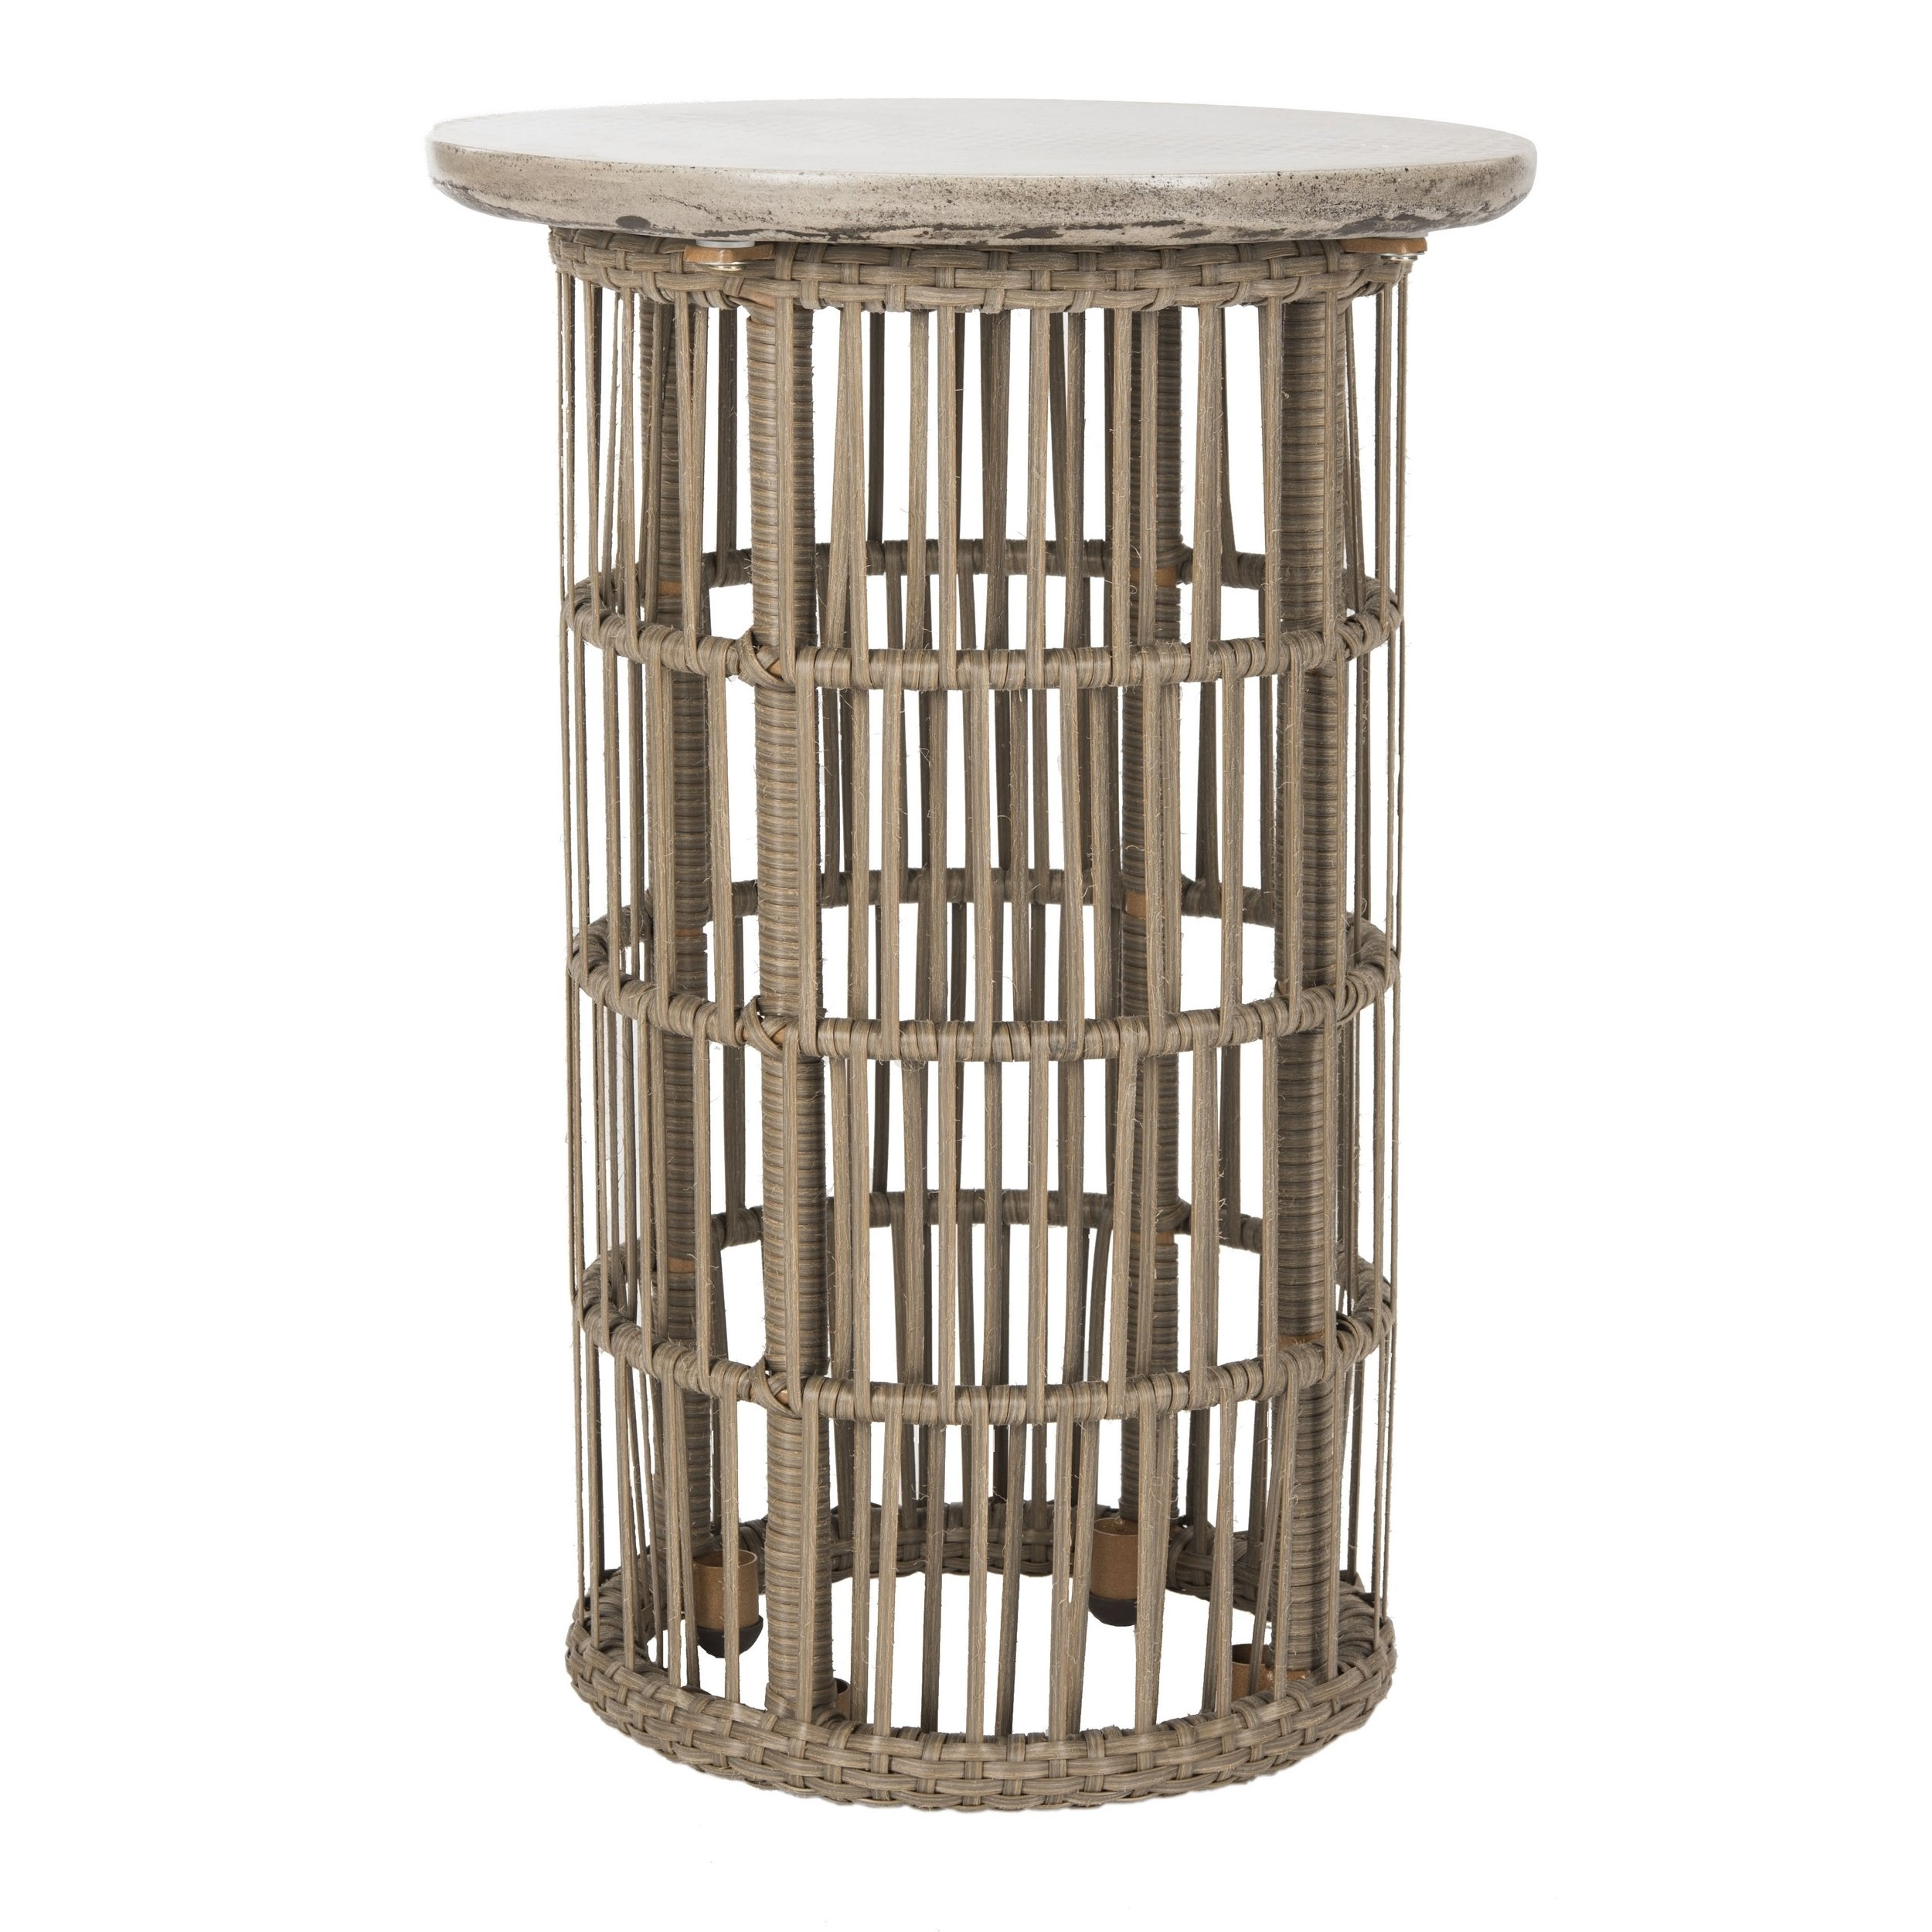 safavieh fane dark grey modern concrete indoor outdoor side table base accent drum throne seat only small patio furniture sets white and gold console nest tables plastic wicker